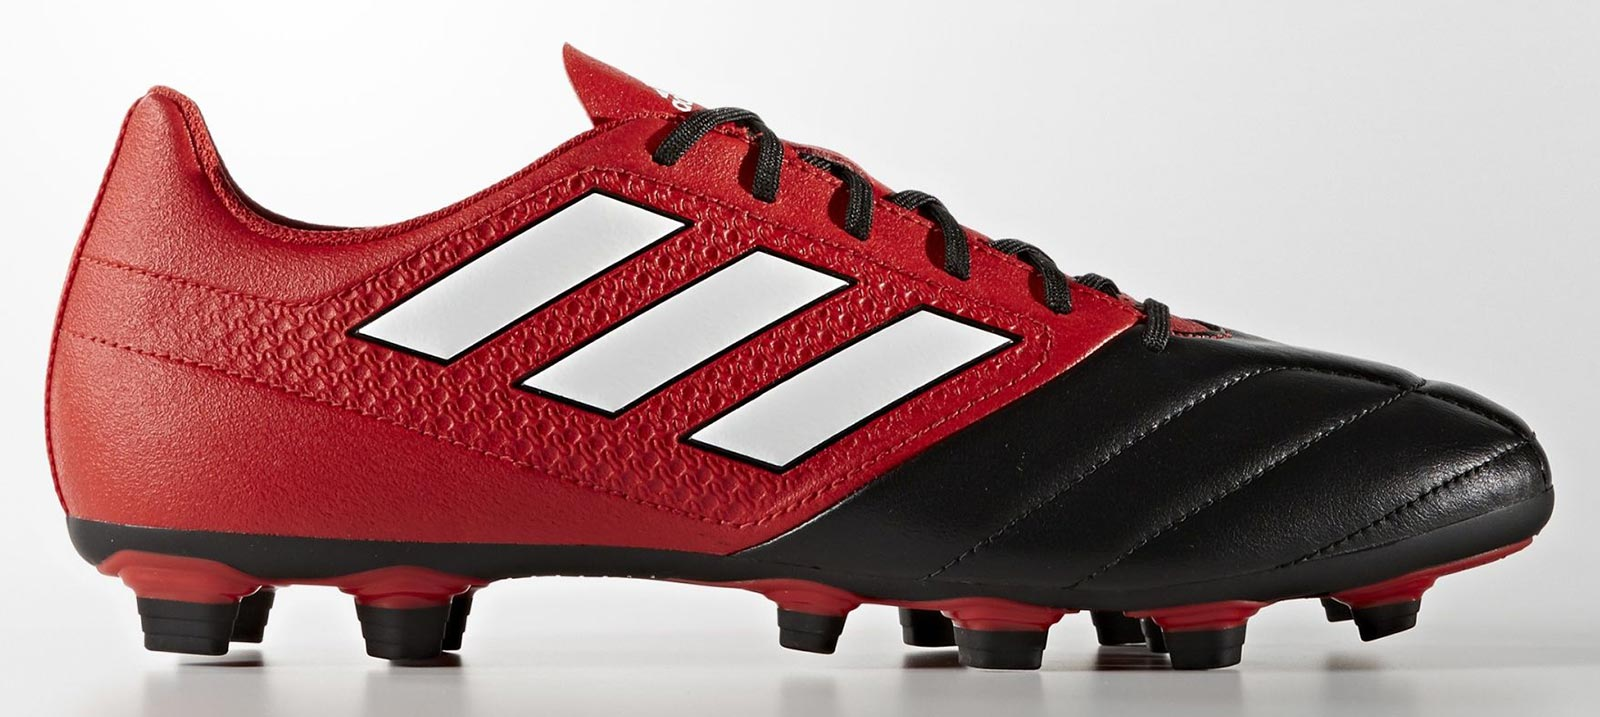 adidas ace 17.4 boots